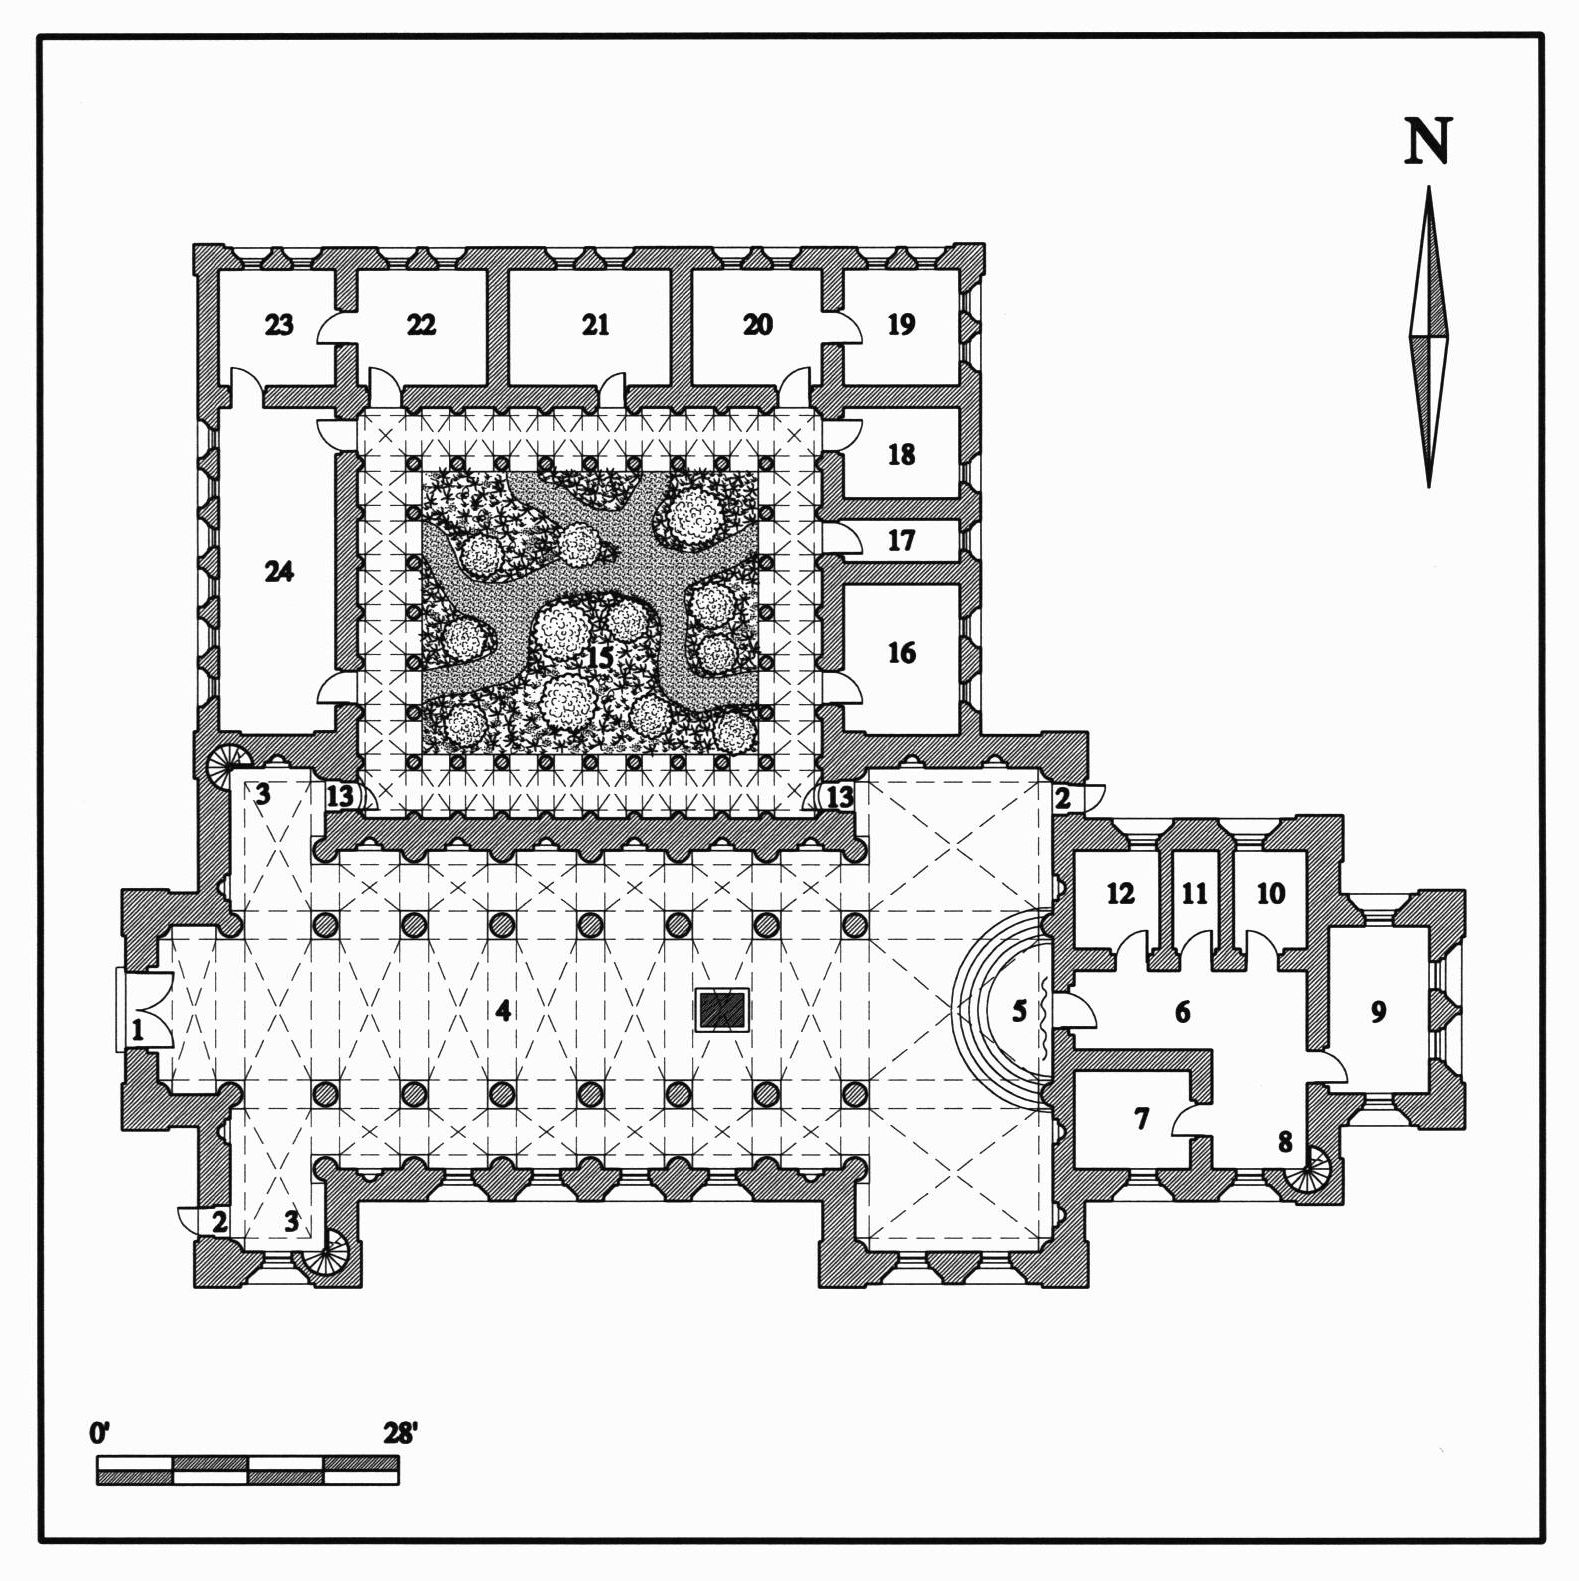 tales from the tower ice merp layout illustrations from the lake